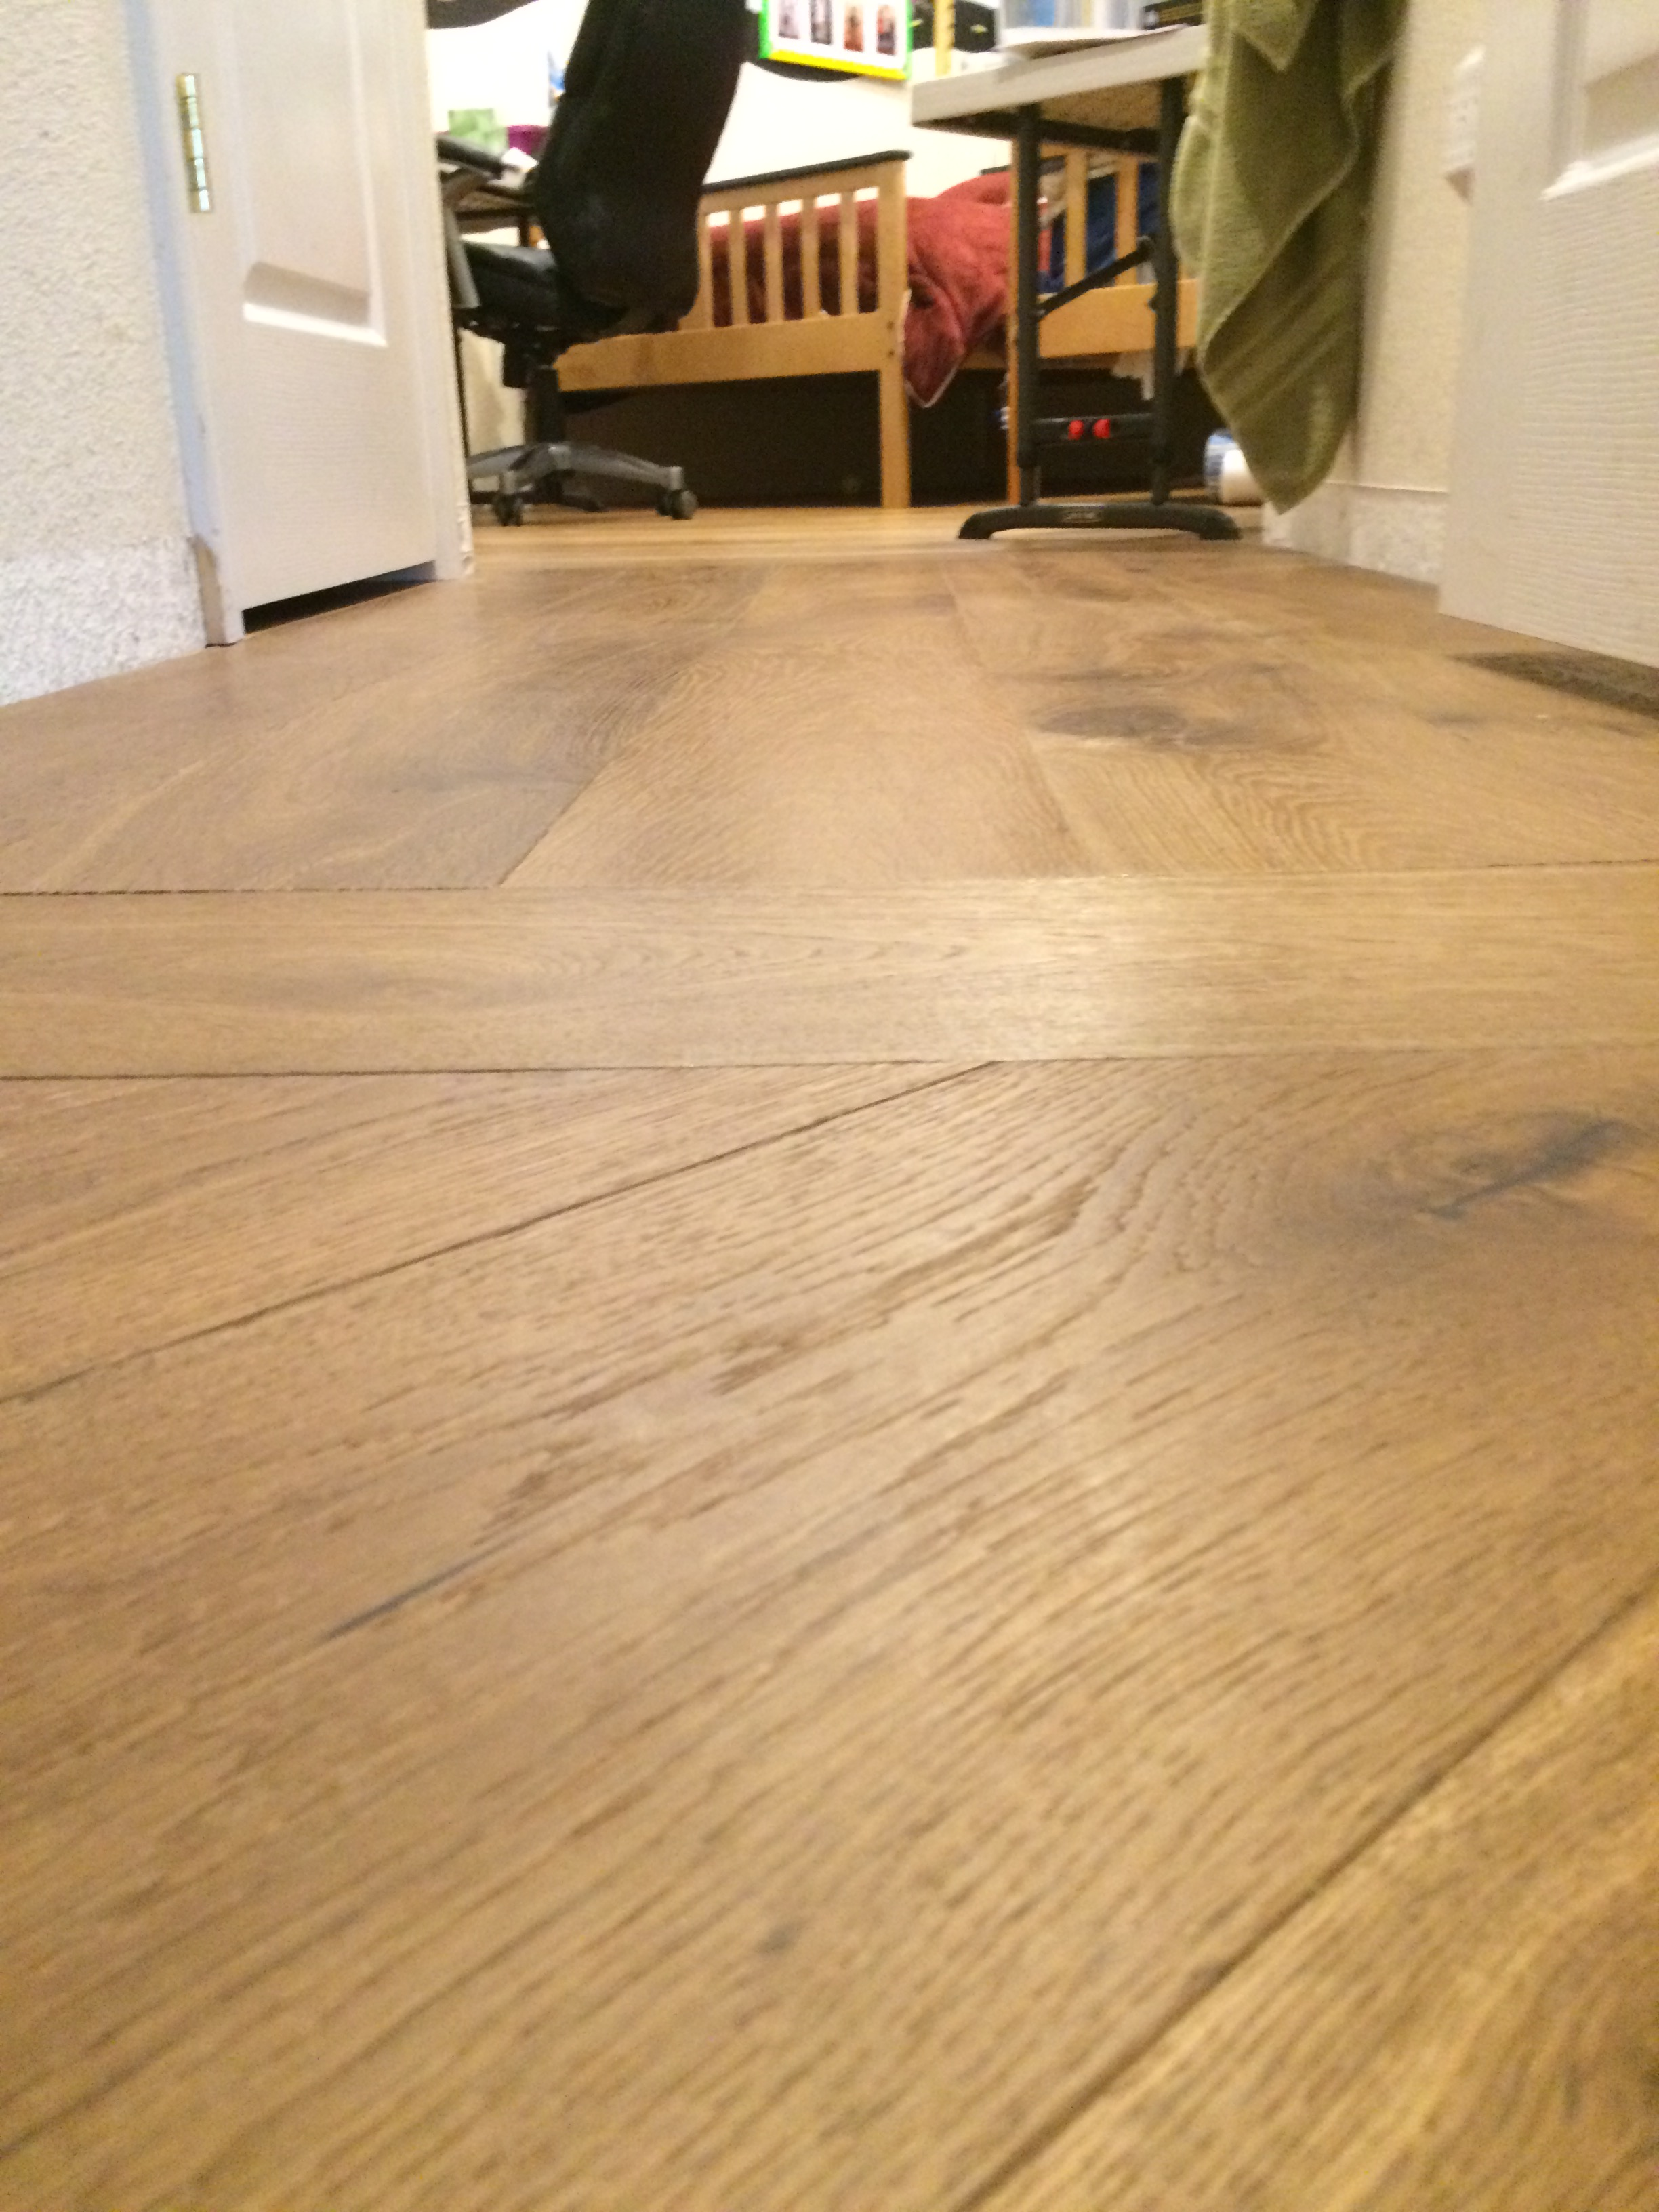 Diablo flooring inc hallmark hardwood diablo ca for Hardwood flooring inc